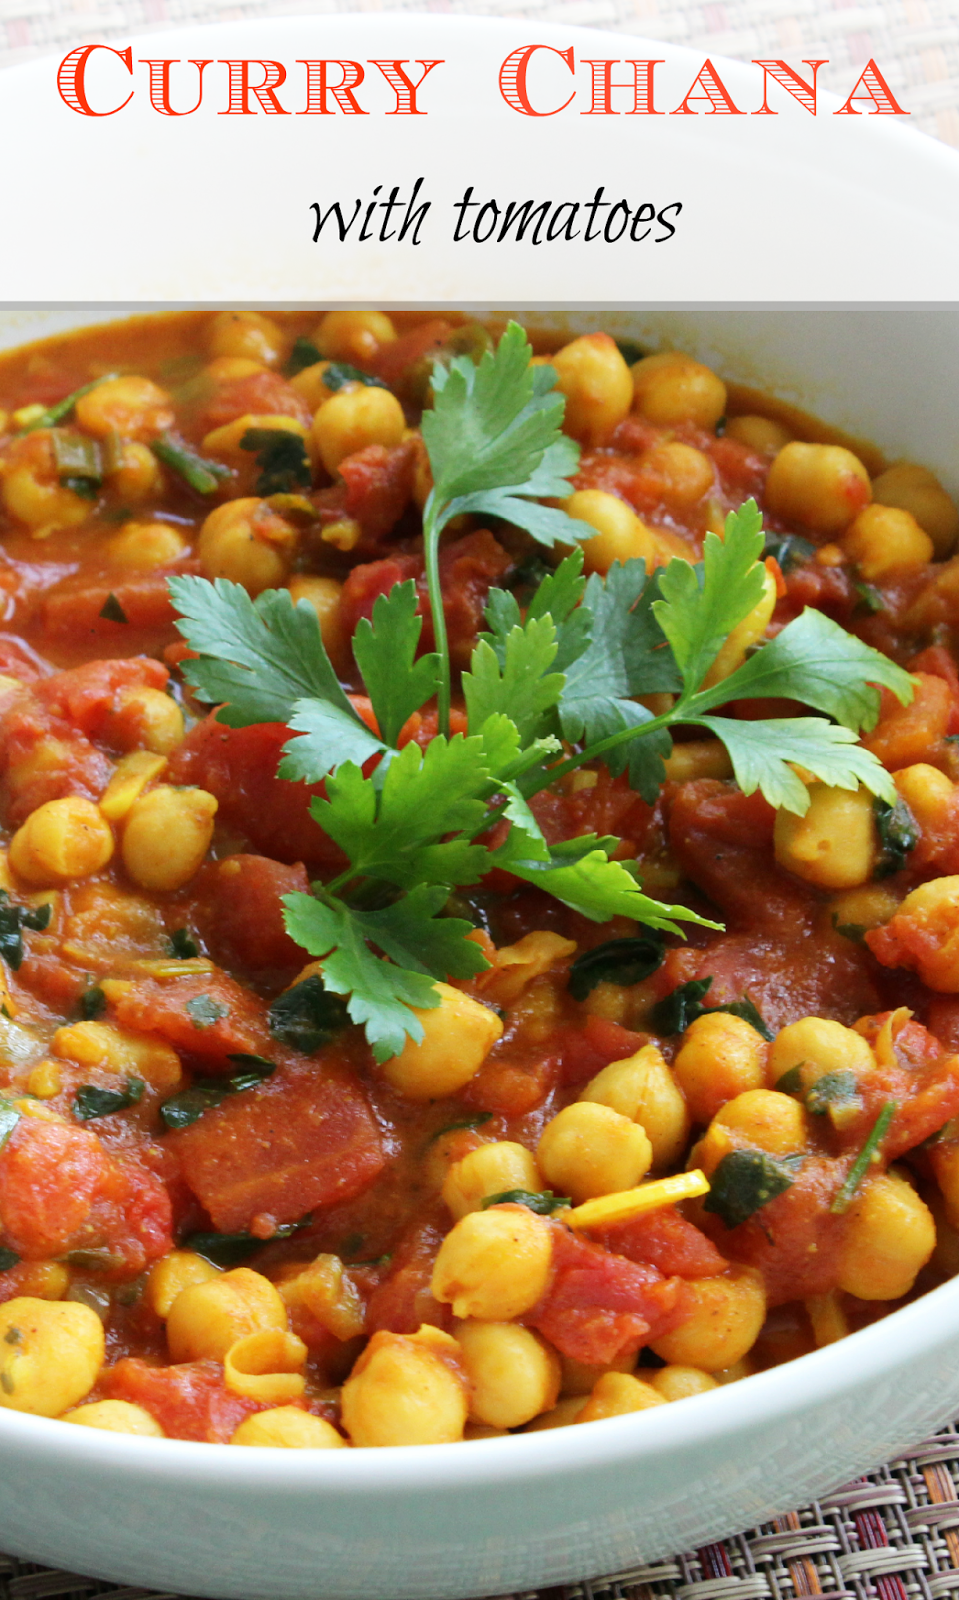 Curry Chana and tomatoes